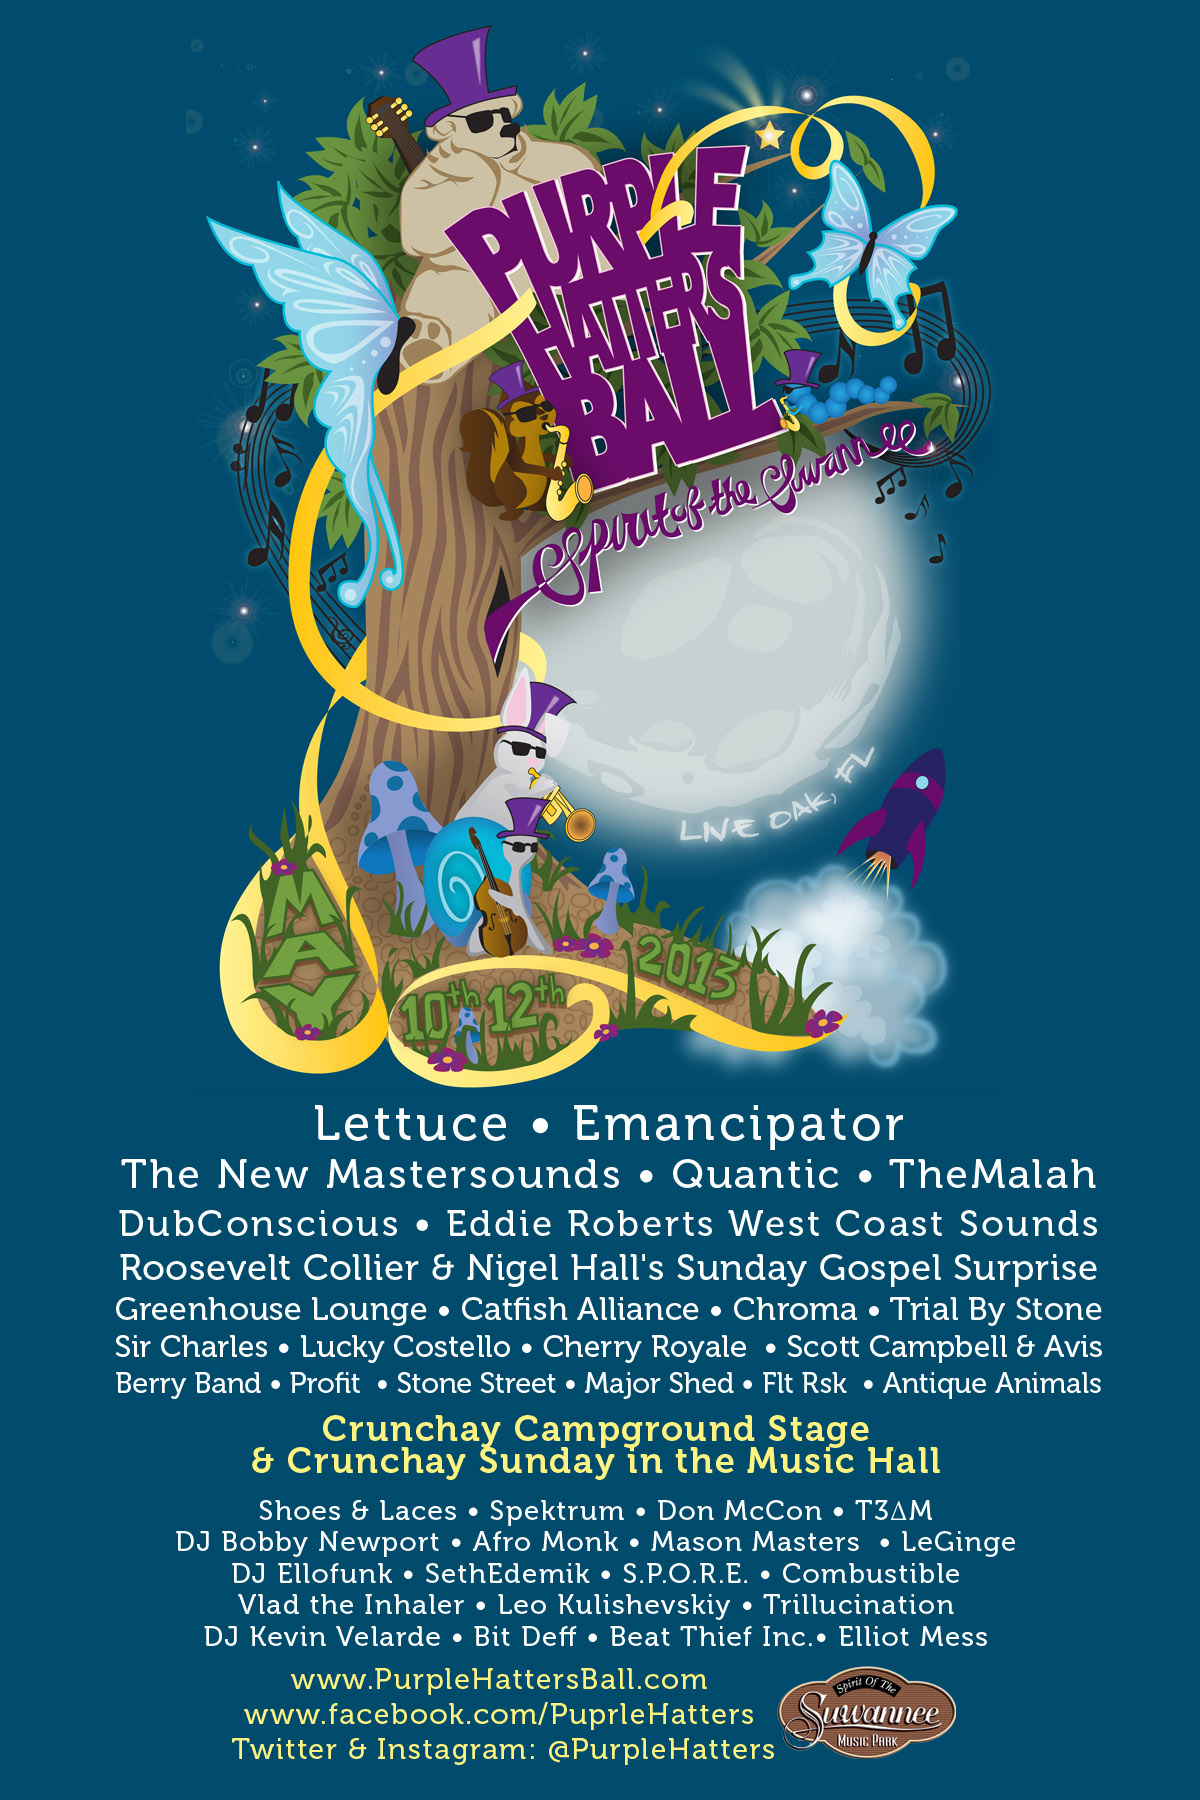 Big Announcements for Purple Hatter's Ball, May 10-12, Live Oak, FL